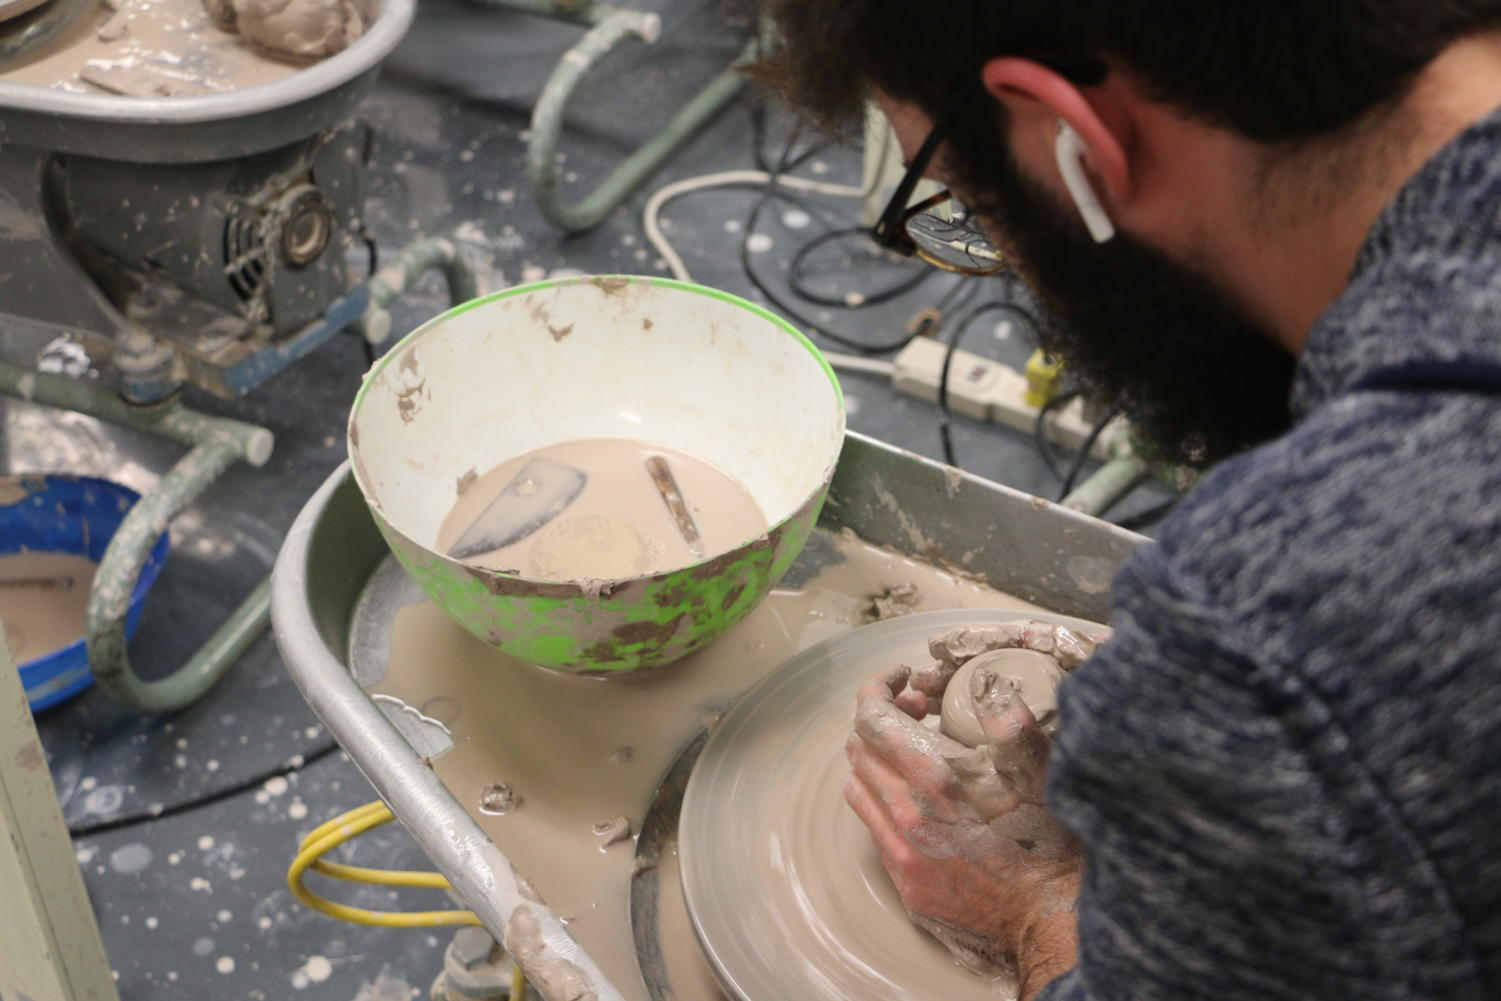 Ceramics+Wheels%3A%0AJunior+Zach+Devore+spins+his+clay+pot+on+the+wheel+in+the+ceramics+4+class+on+March+18.+He+said%2C+%E2%80%9CI+enjoy+this+class+because+it+isn%E2%80%99t+stressful+and+I+can+listen+to+music+while+talking+with+my+friends+too.%E2%80%9D